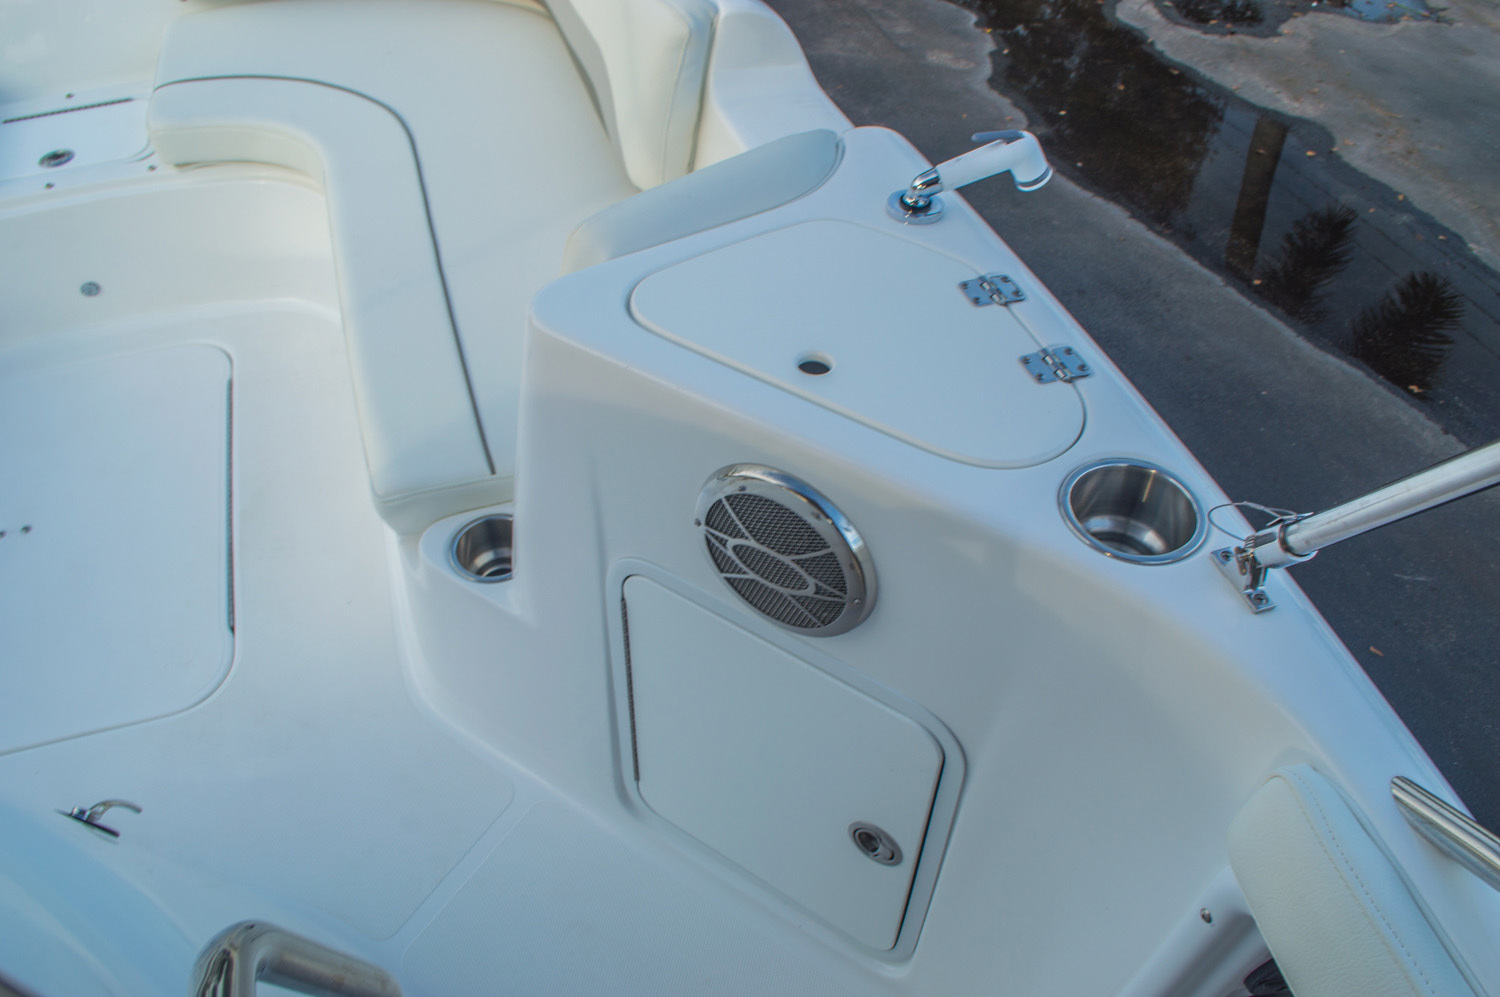 Thumbnail 38 for New 2016 Hurricane CC211 Center Consle boat for sale in West Palm Beach, FL